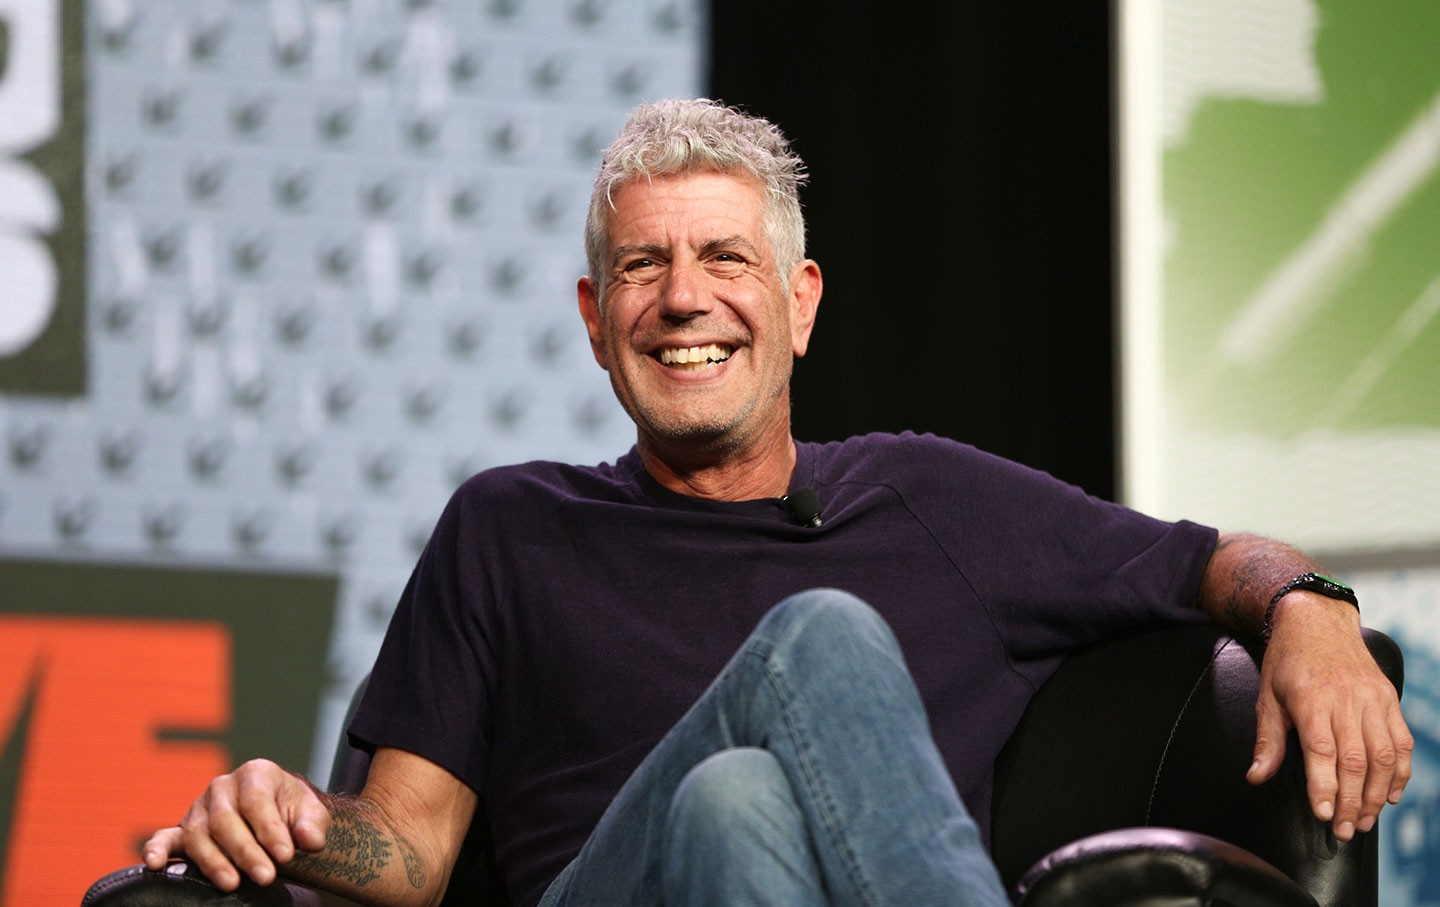 Anthony Bourdain sitting on stage at South by Southwest 2016